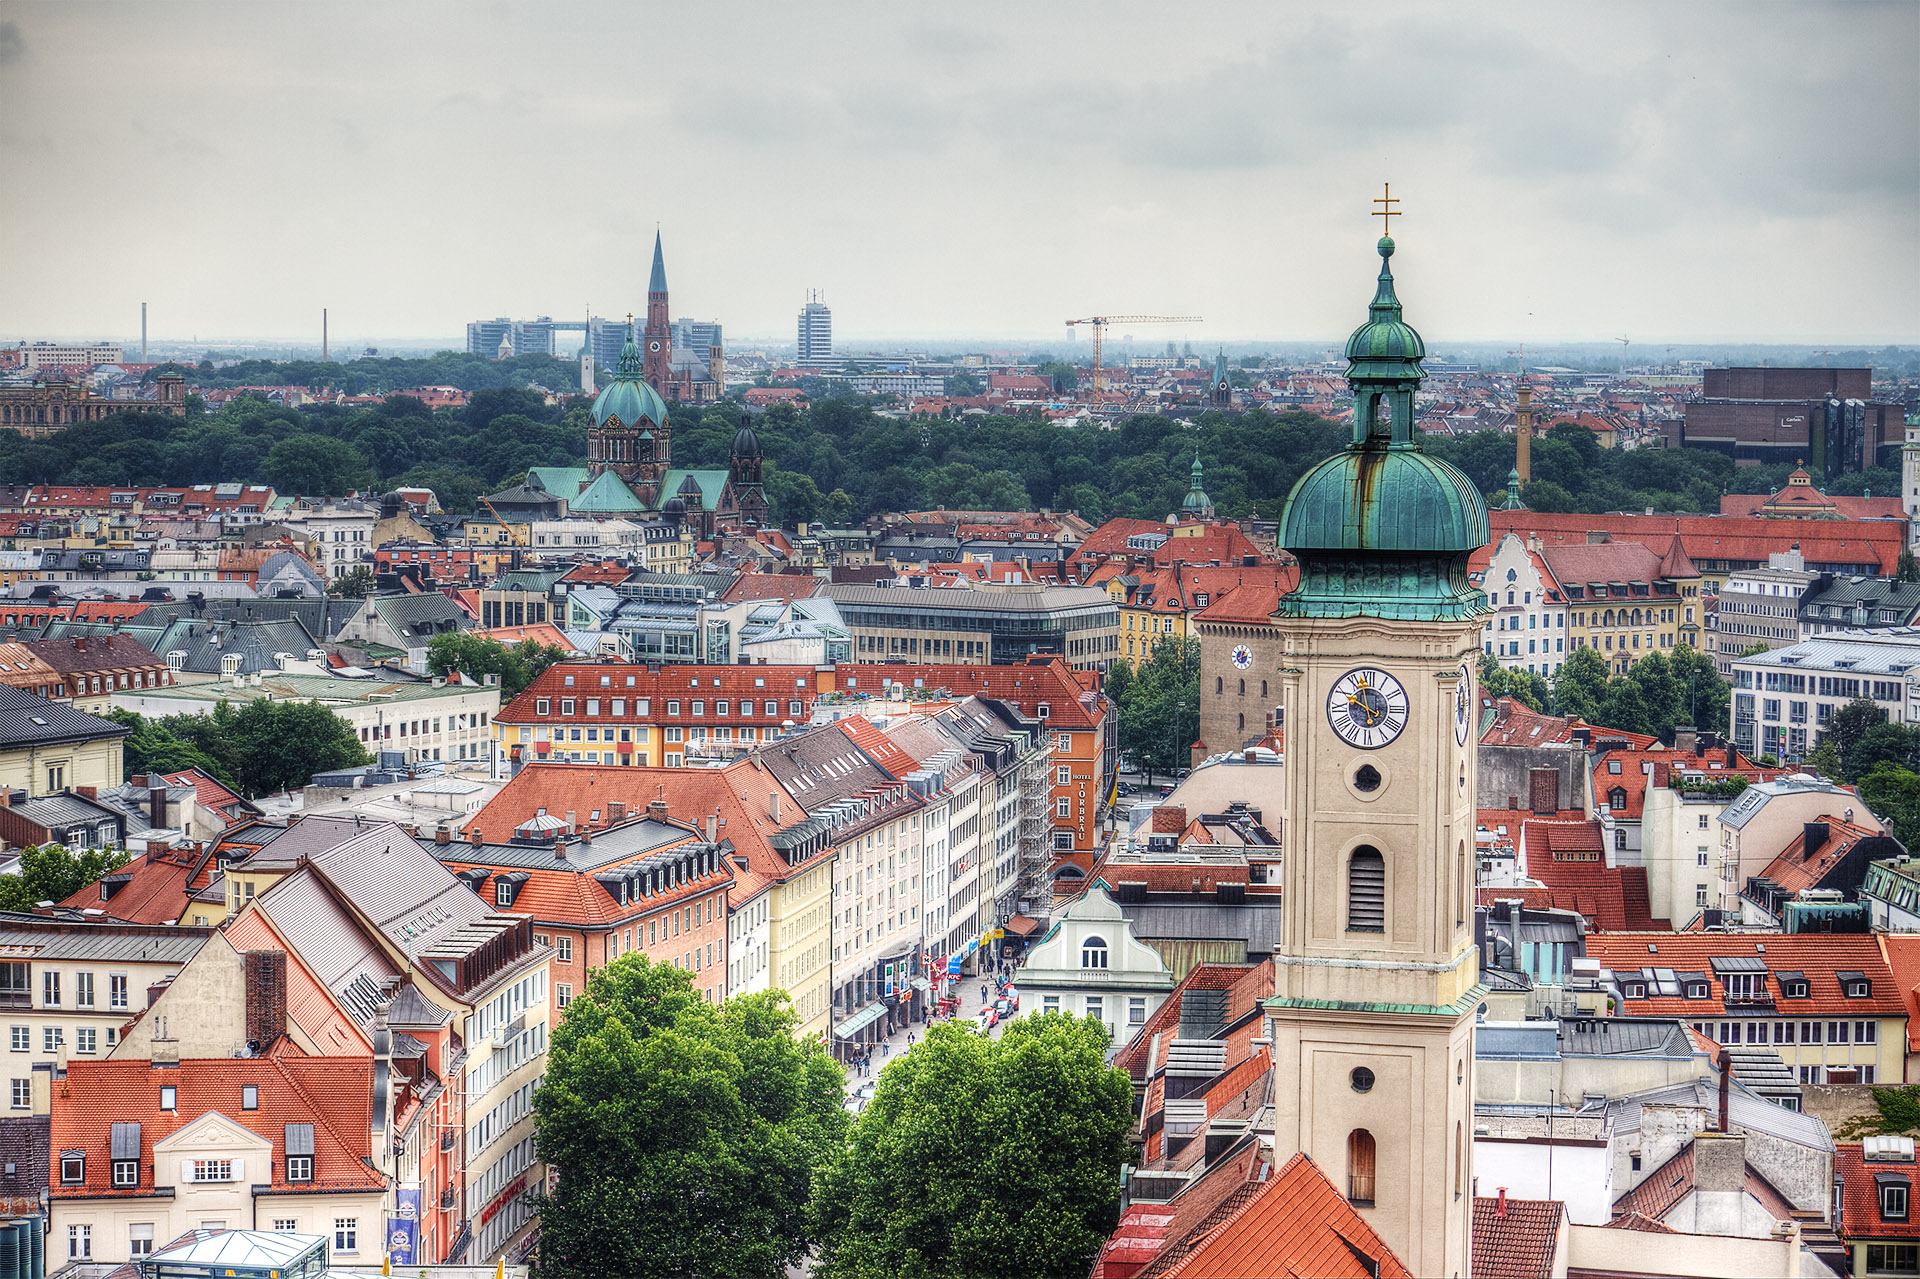 View from St Peter's Church tower, Munich.